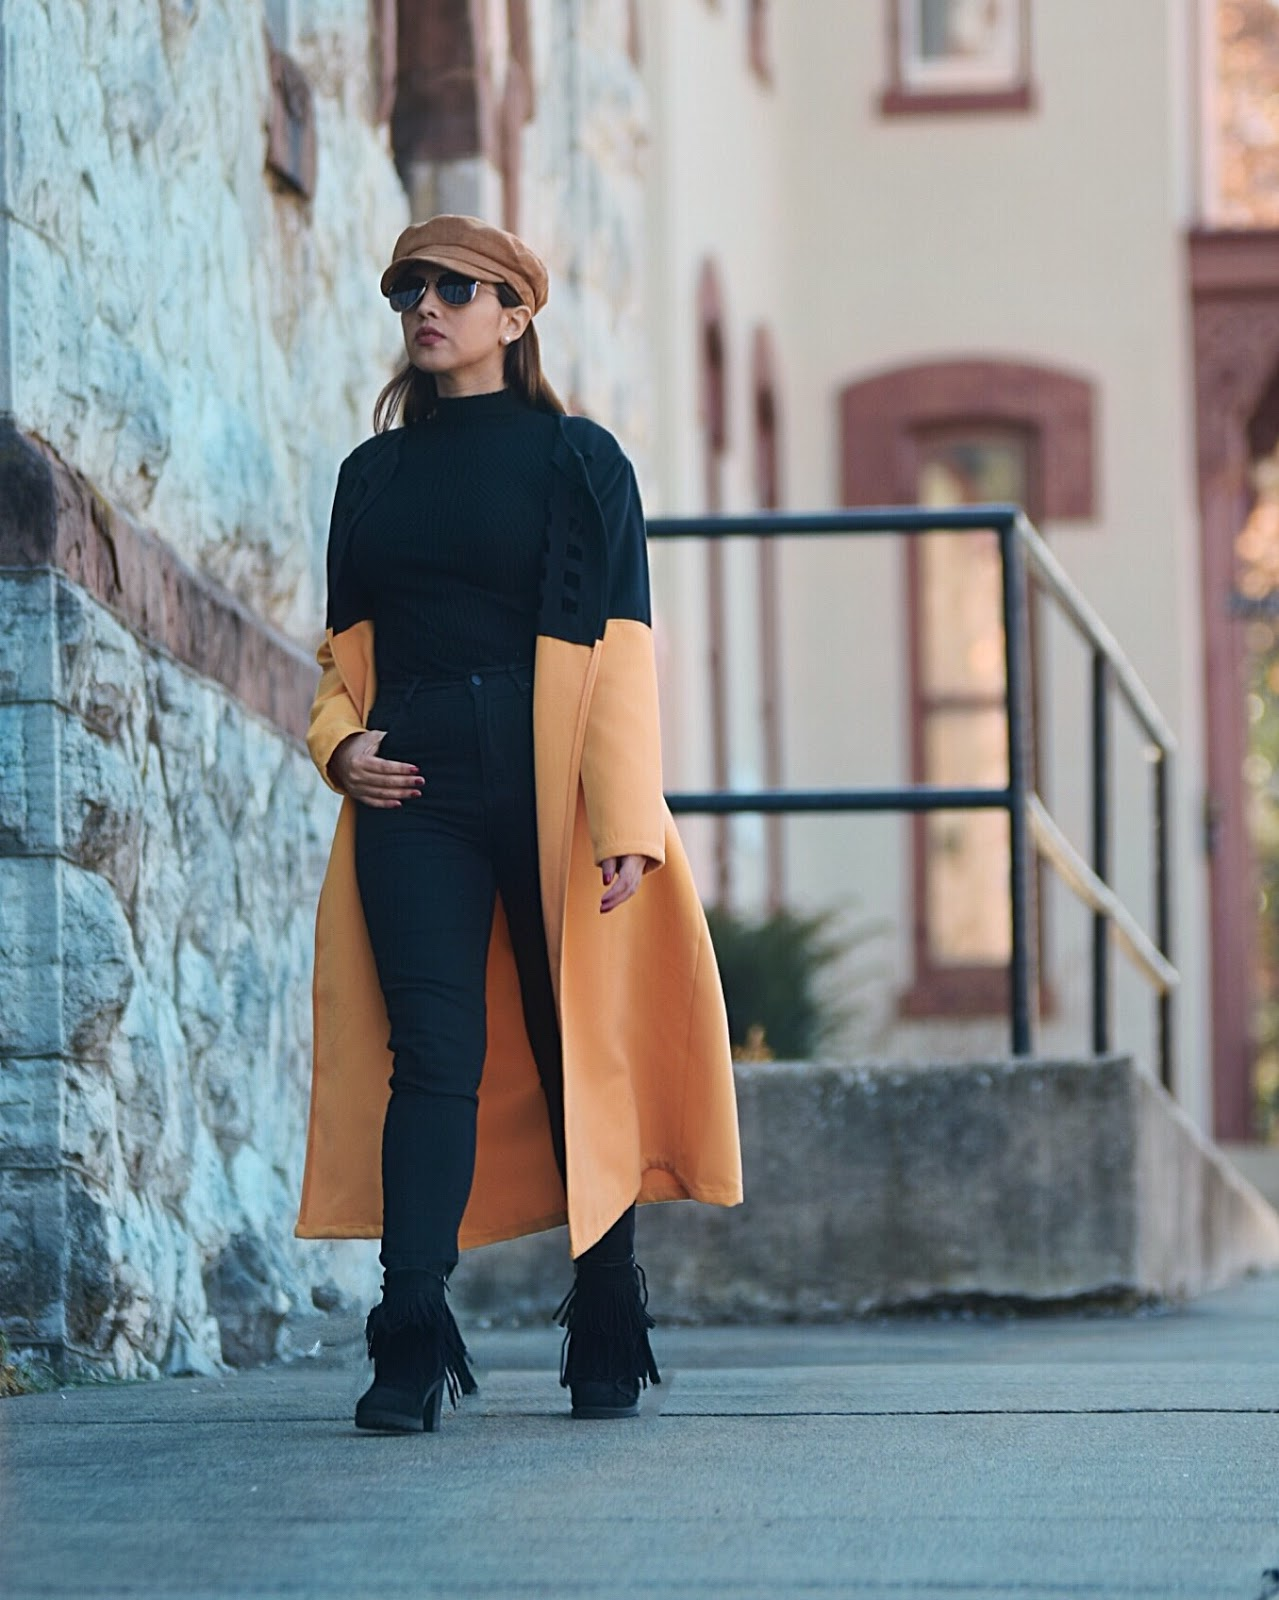 Un Toque De Amarillo En Invierno by Mari Estilo-lookoftheday-fashionblogger-dcblogger-